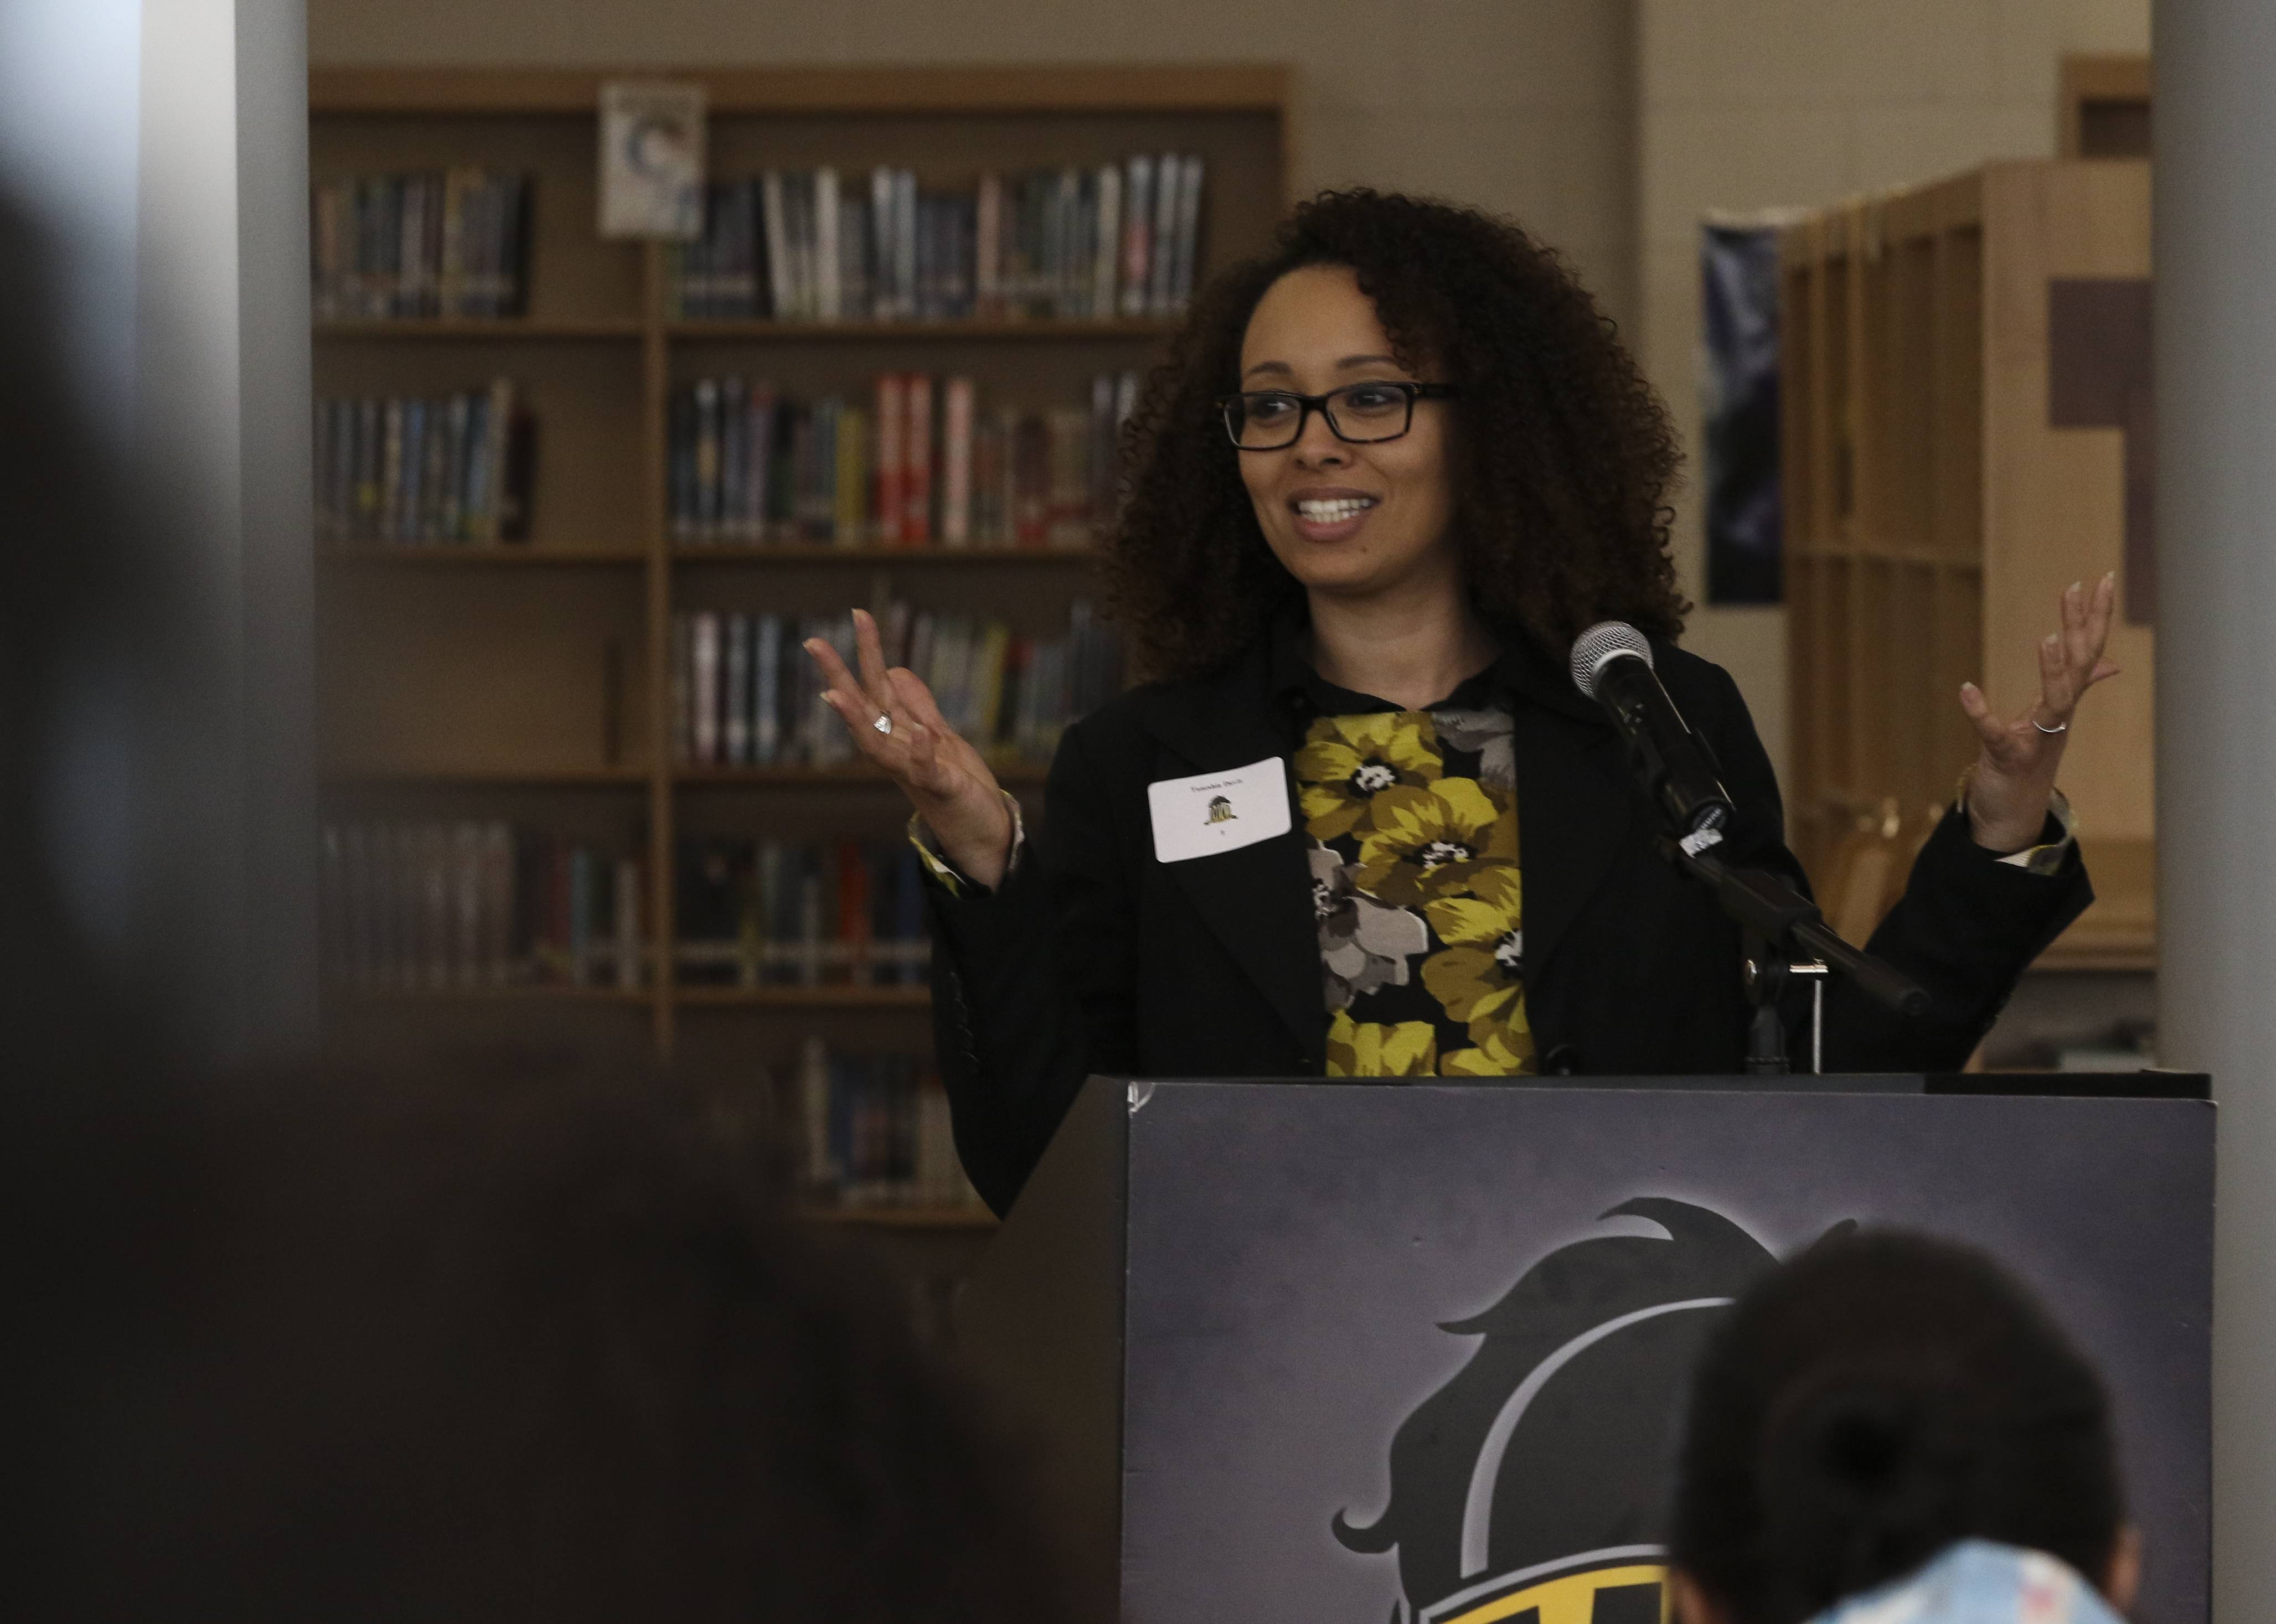 Four professionally successful women, including Taneshia Davis, specialized youth services coordinator for 360 Youth Services in Naperville, shared their stories with about 75 students at Metea Valley High School in Aurora to celebrate Women's History Month.